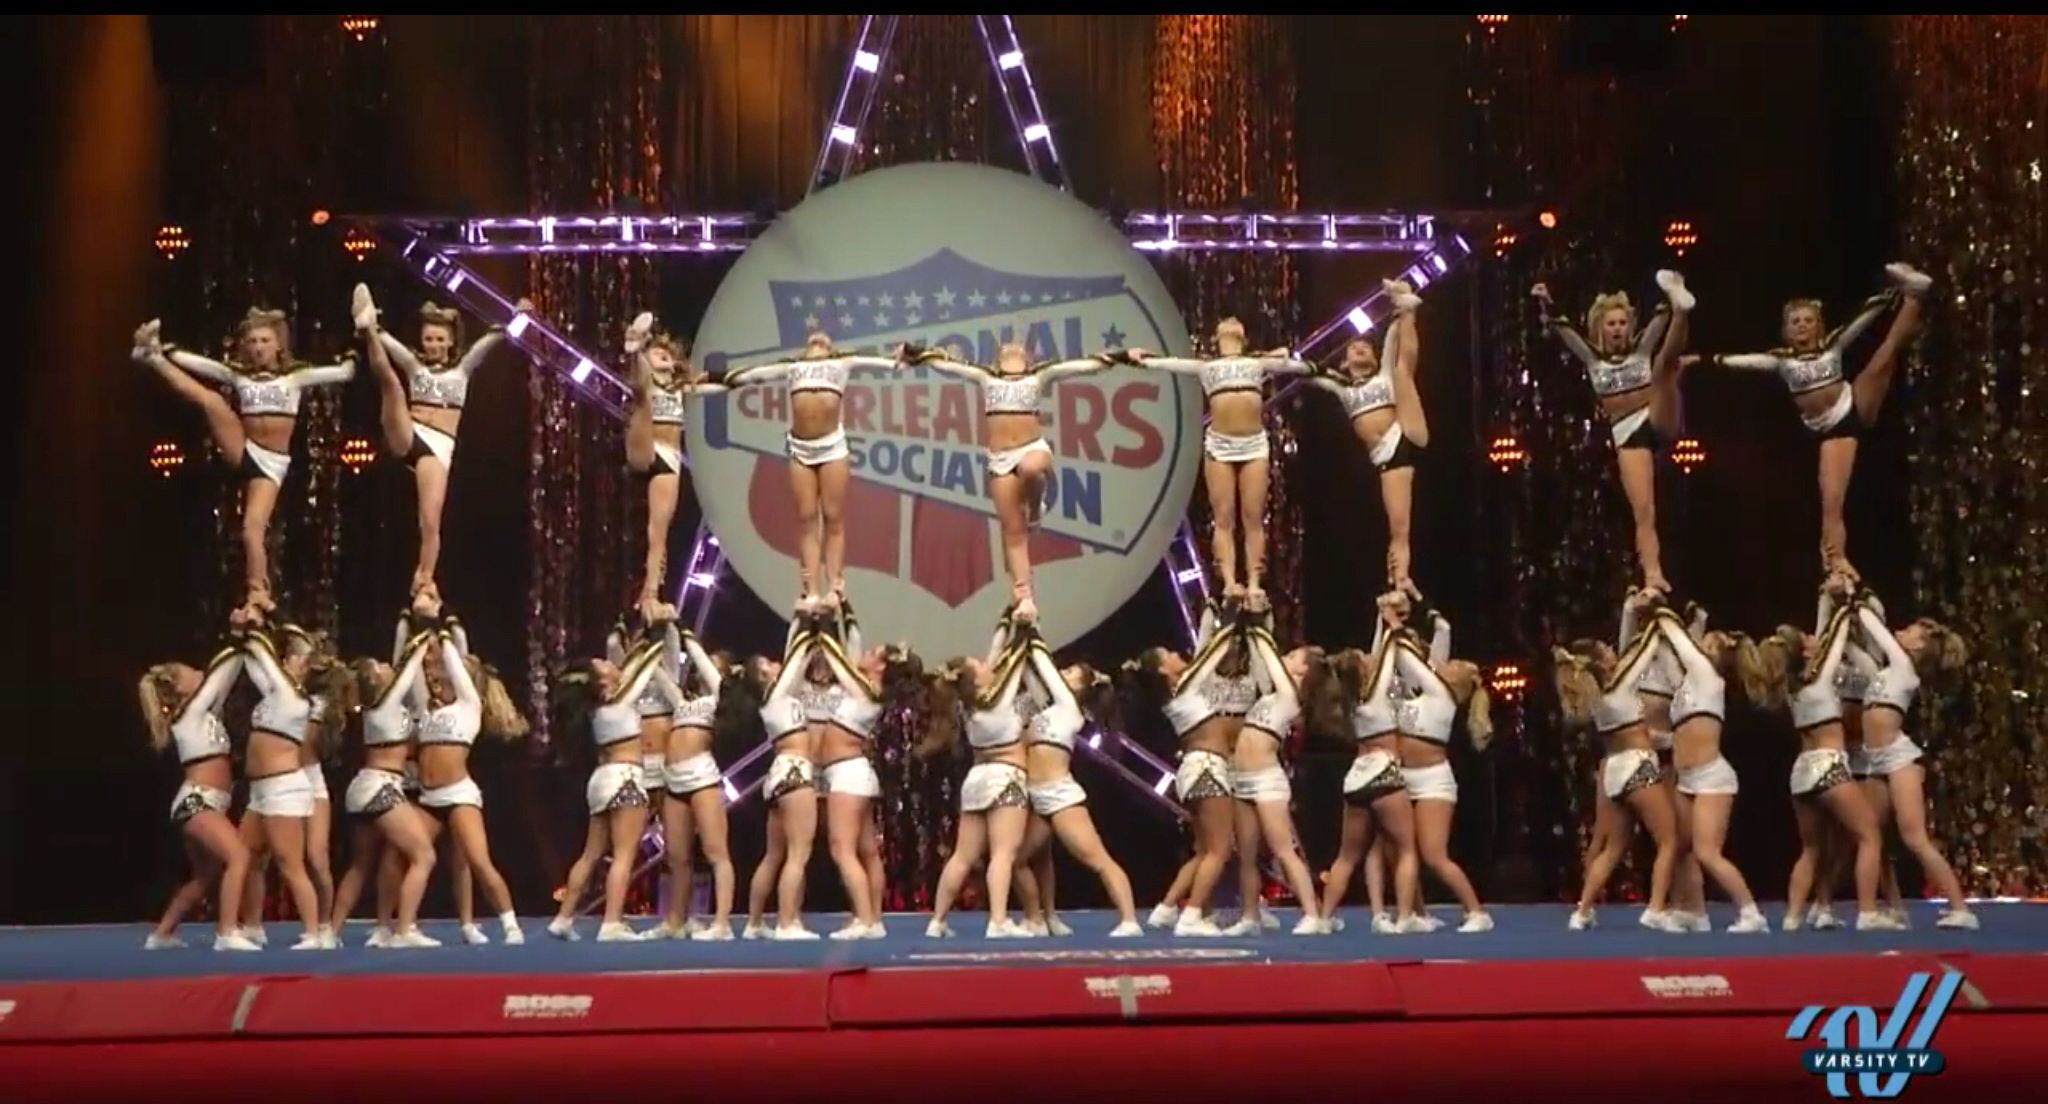 World Cup Twinkles At Nca Championships 2013 World Cup Logo World Cup All Star Cheer